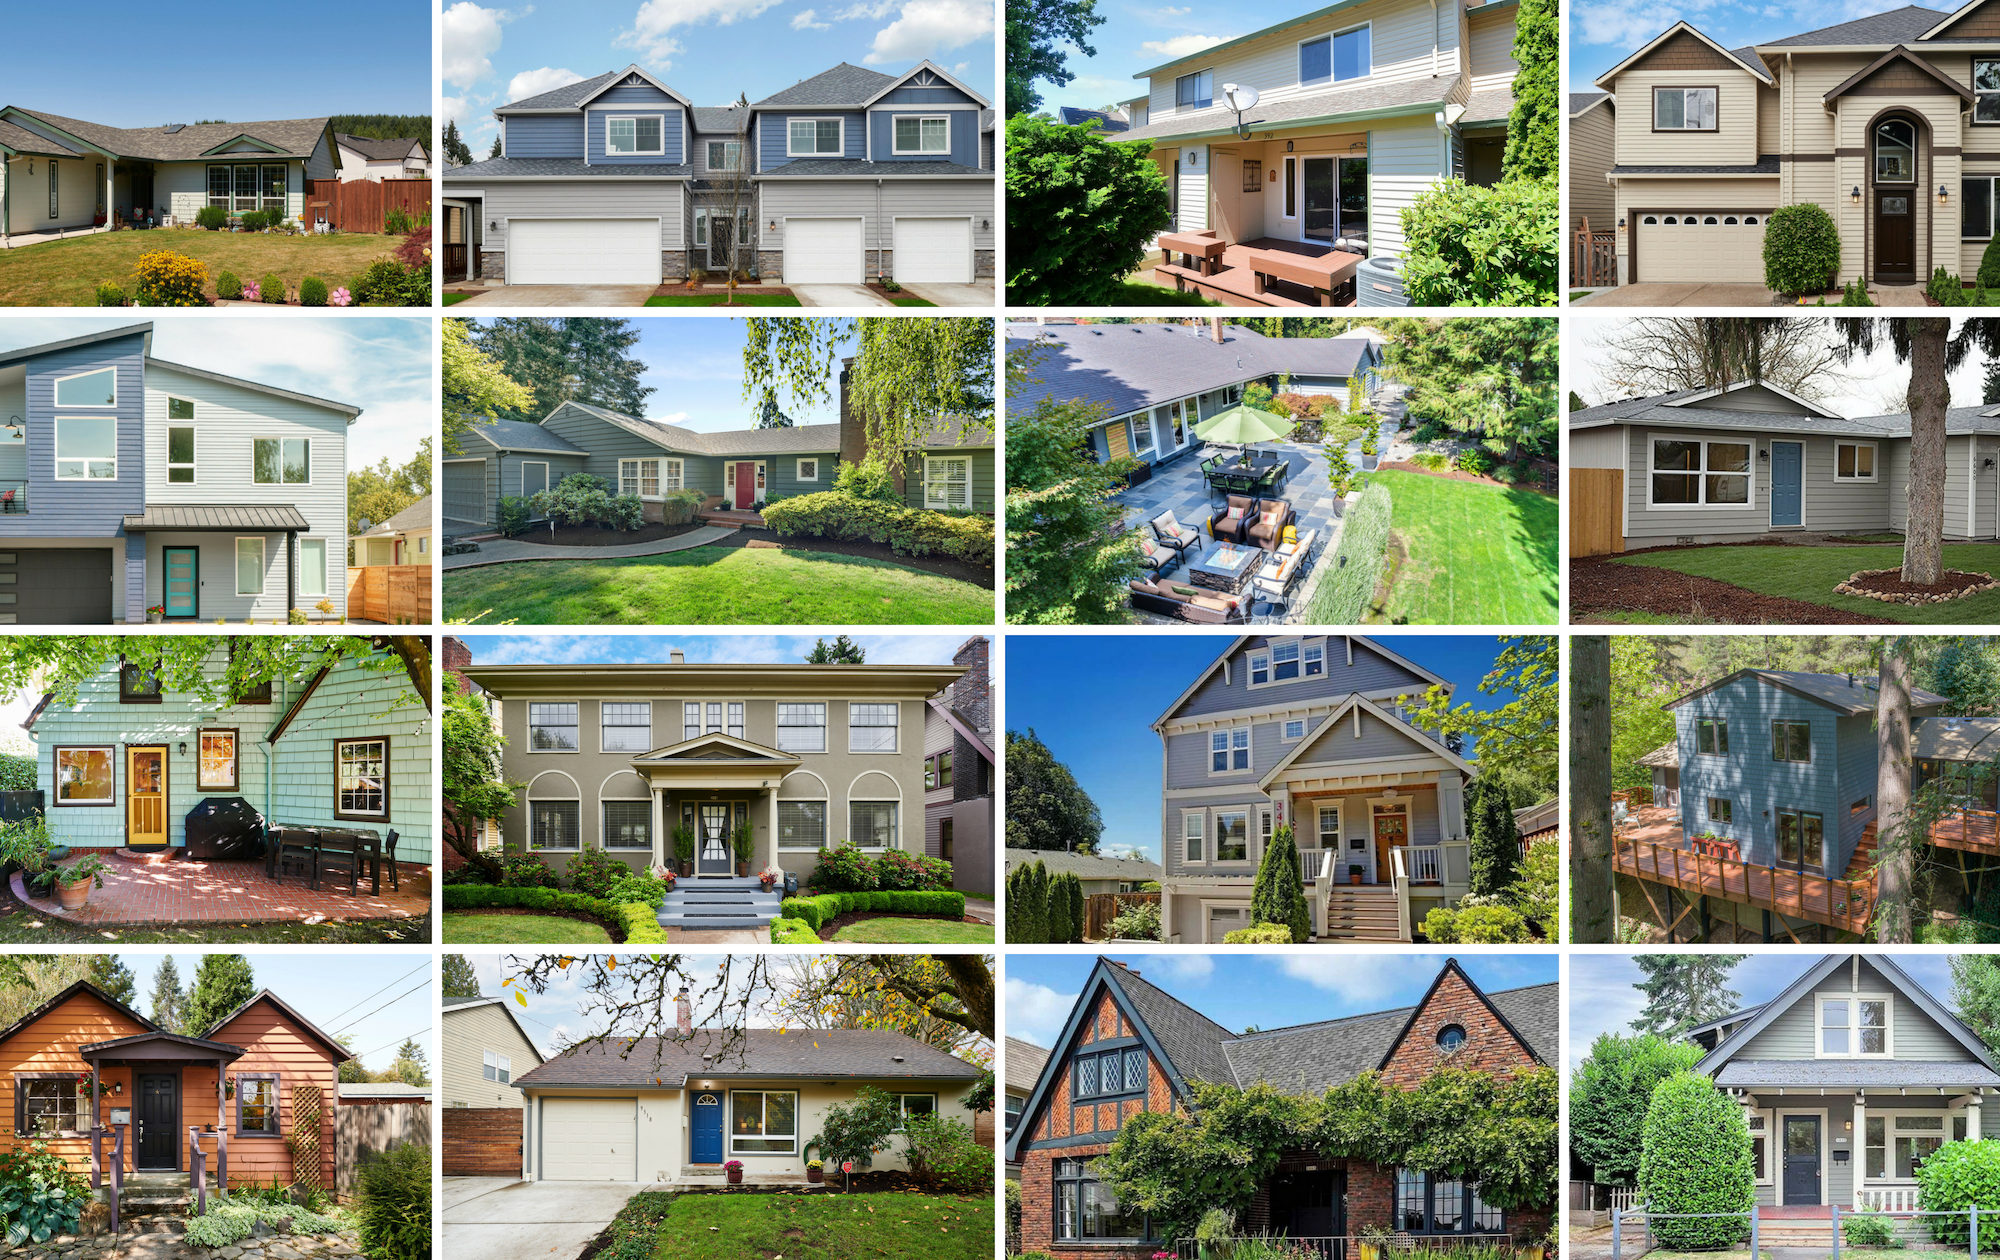 Exterior of homes in Portland and suburbs bought and sold by Susie Hunt Moran in 2018